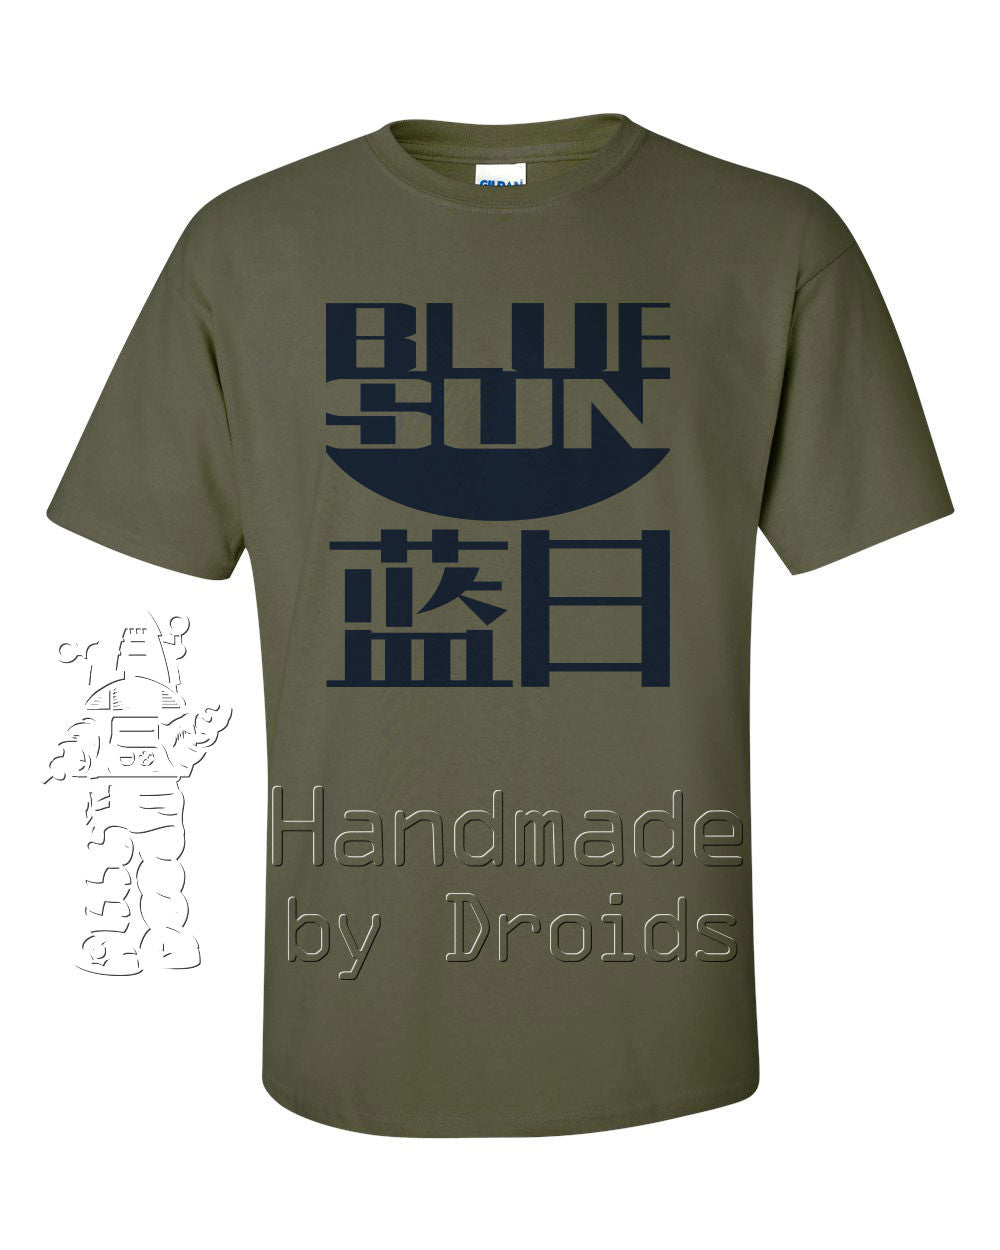 Blue Sun evil corporation logo t-shirt from Firefly